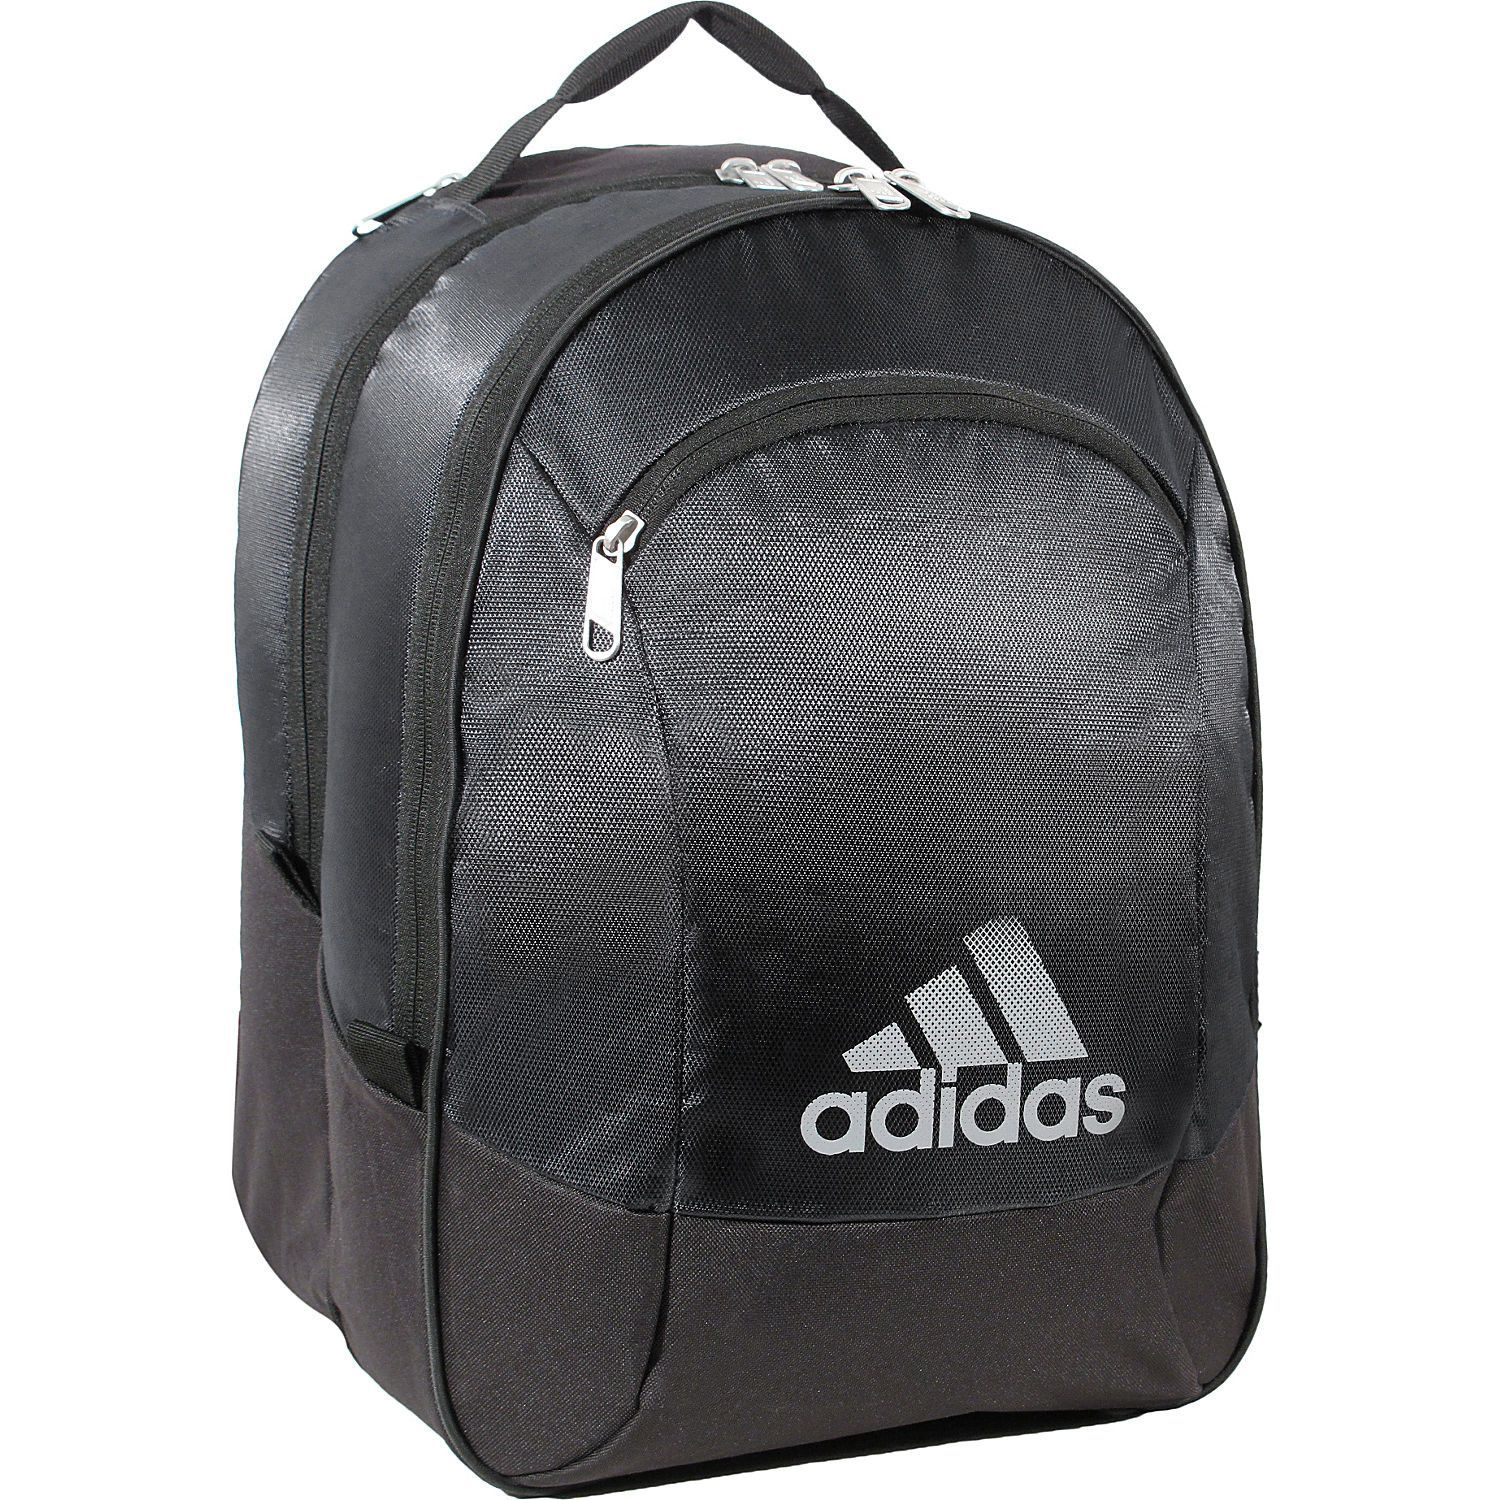 Adidas Striker Team Backpack   Soccer Equipment   Pinterest   Zapatillas 13e3542b17